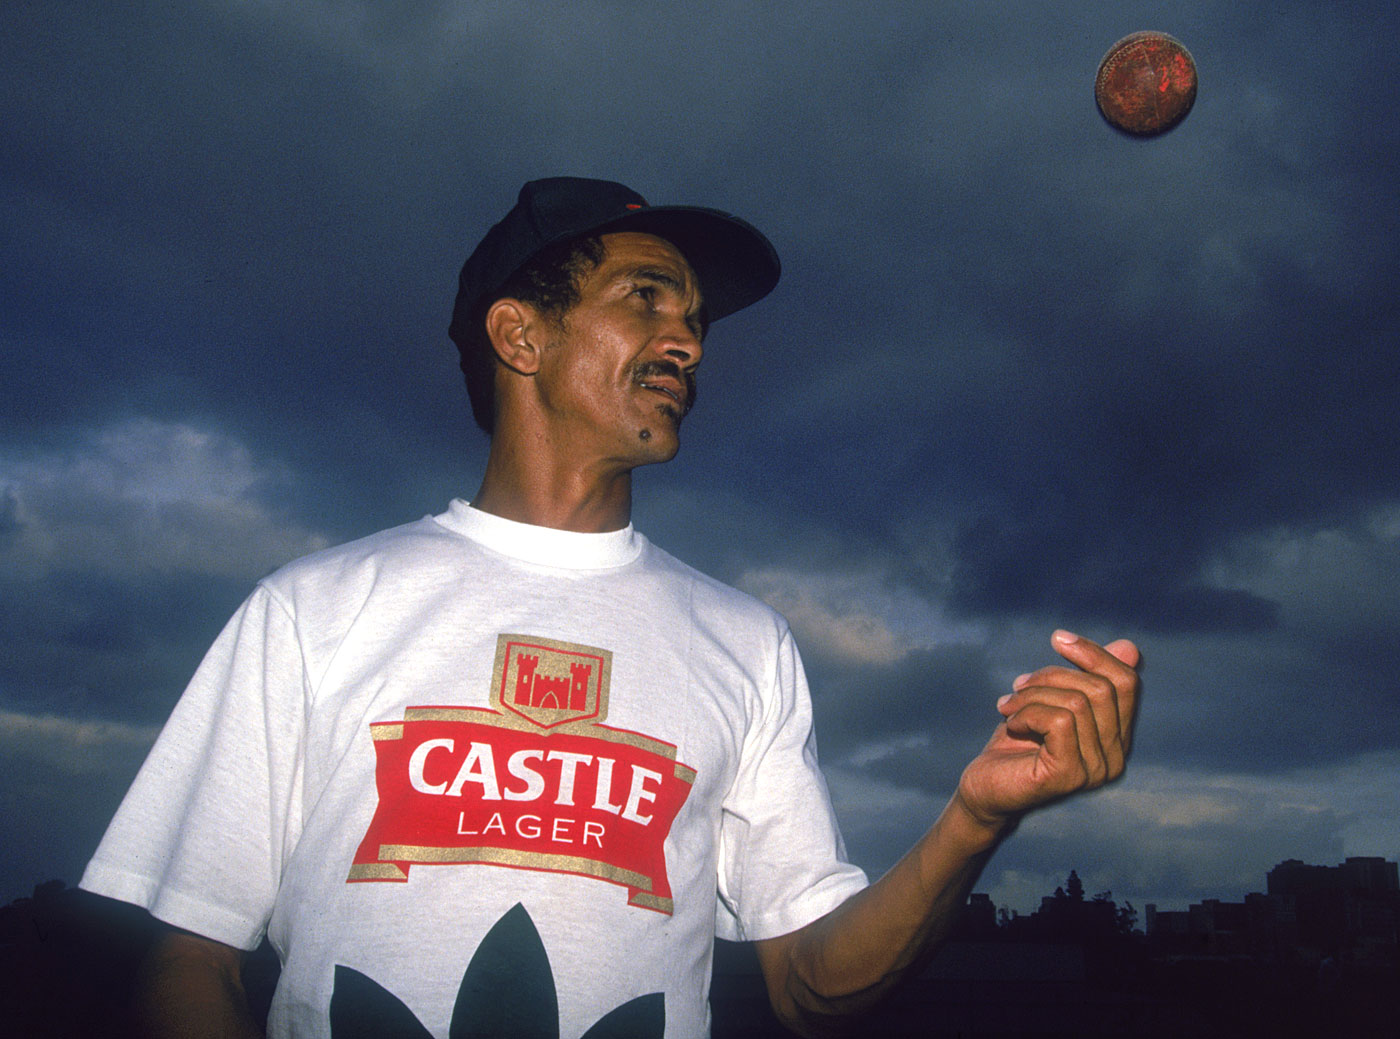 In 1992, left-arm spinner Omar Henry, aged 40, became the first non-white player to play Test cricket for South Africa